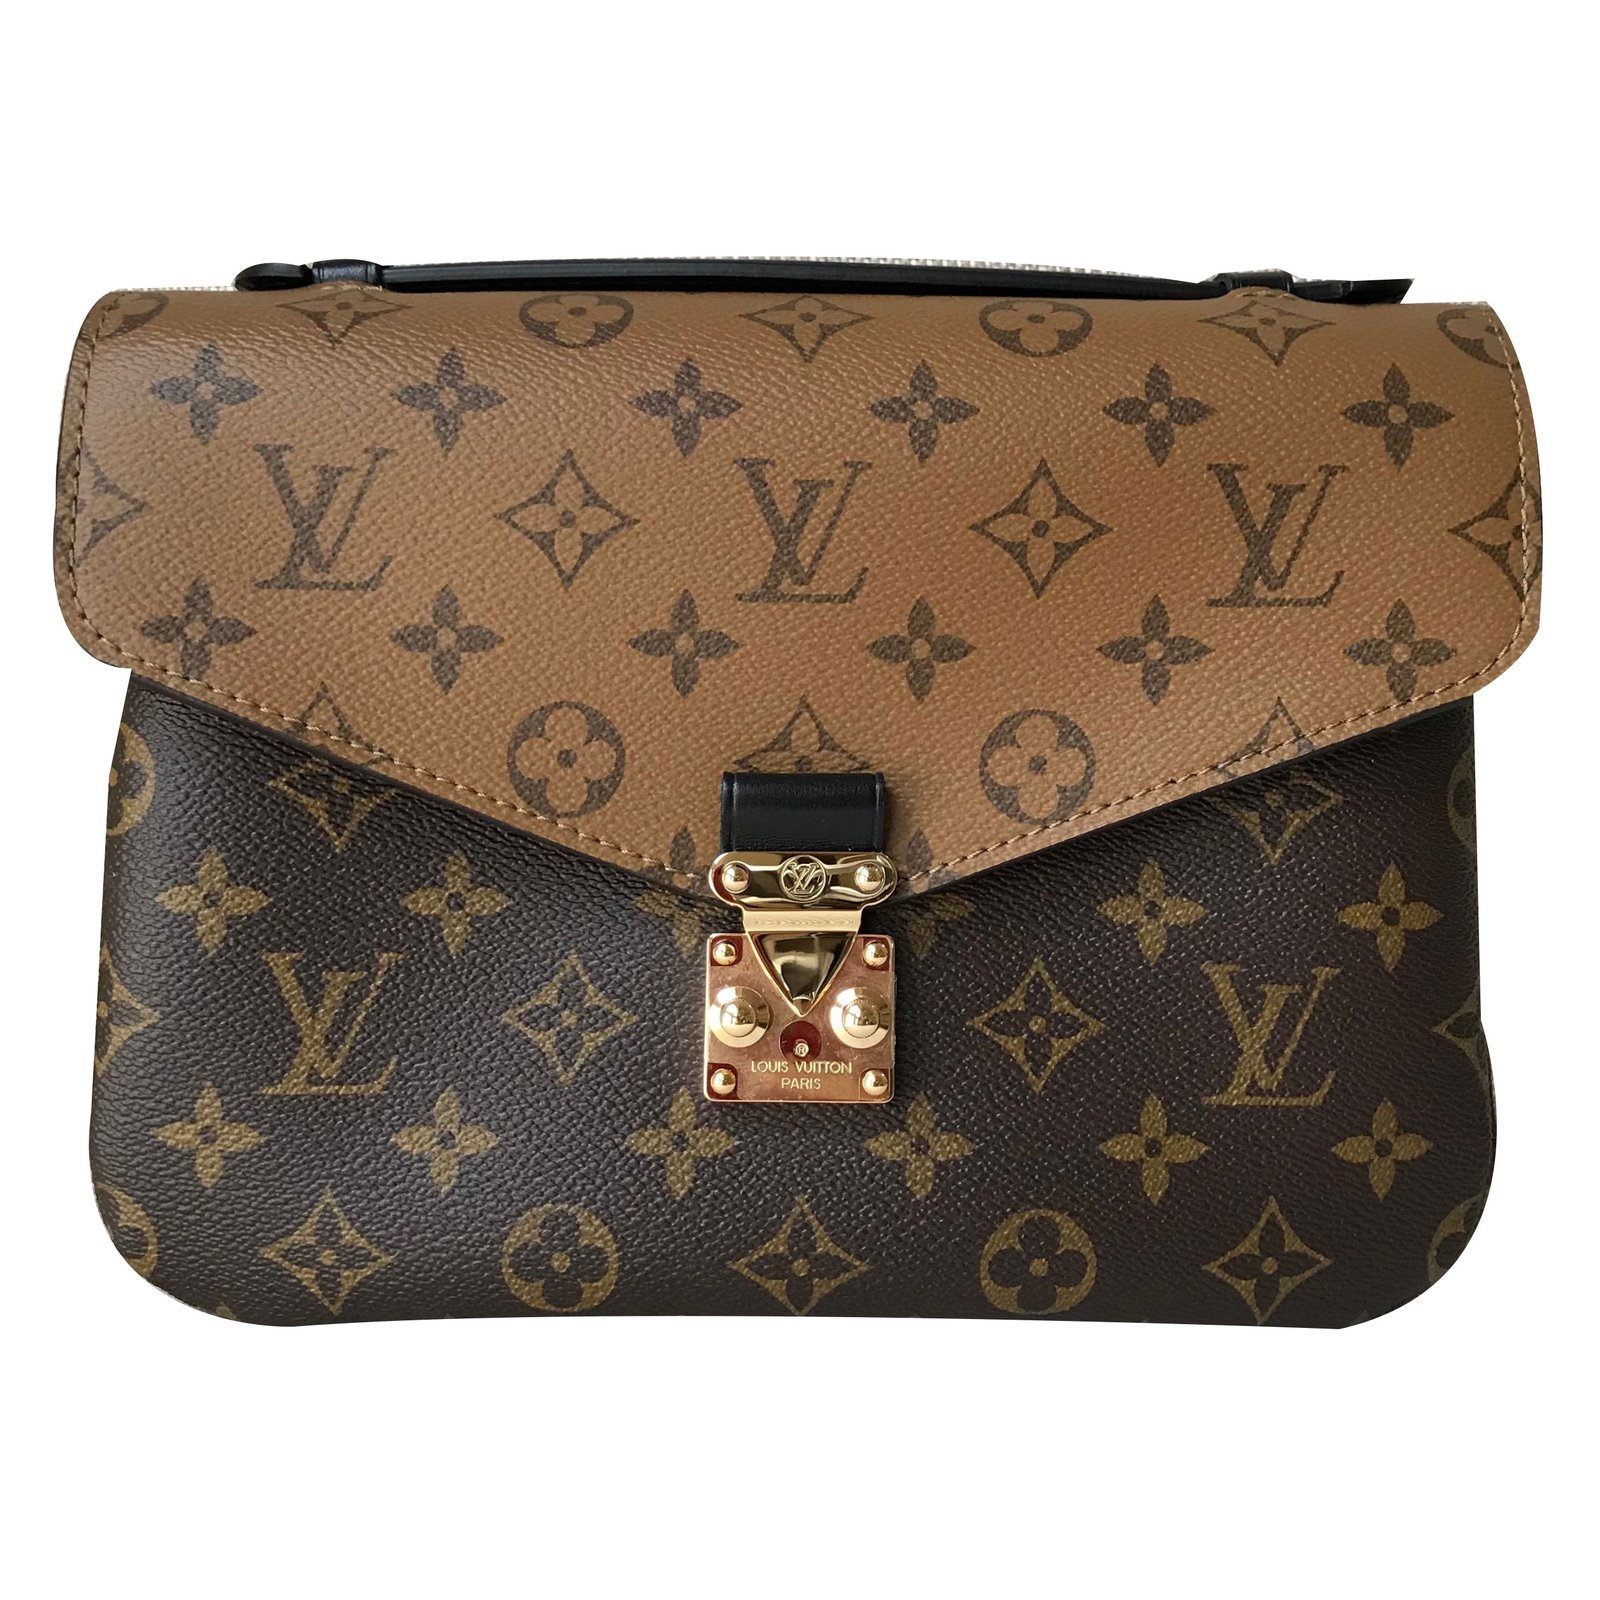 660ccd0f6133 Louis Vuitton Metis Monogram Handbags Linen Brown ref.69584 - Joli ...